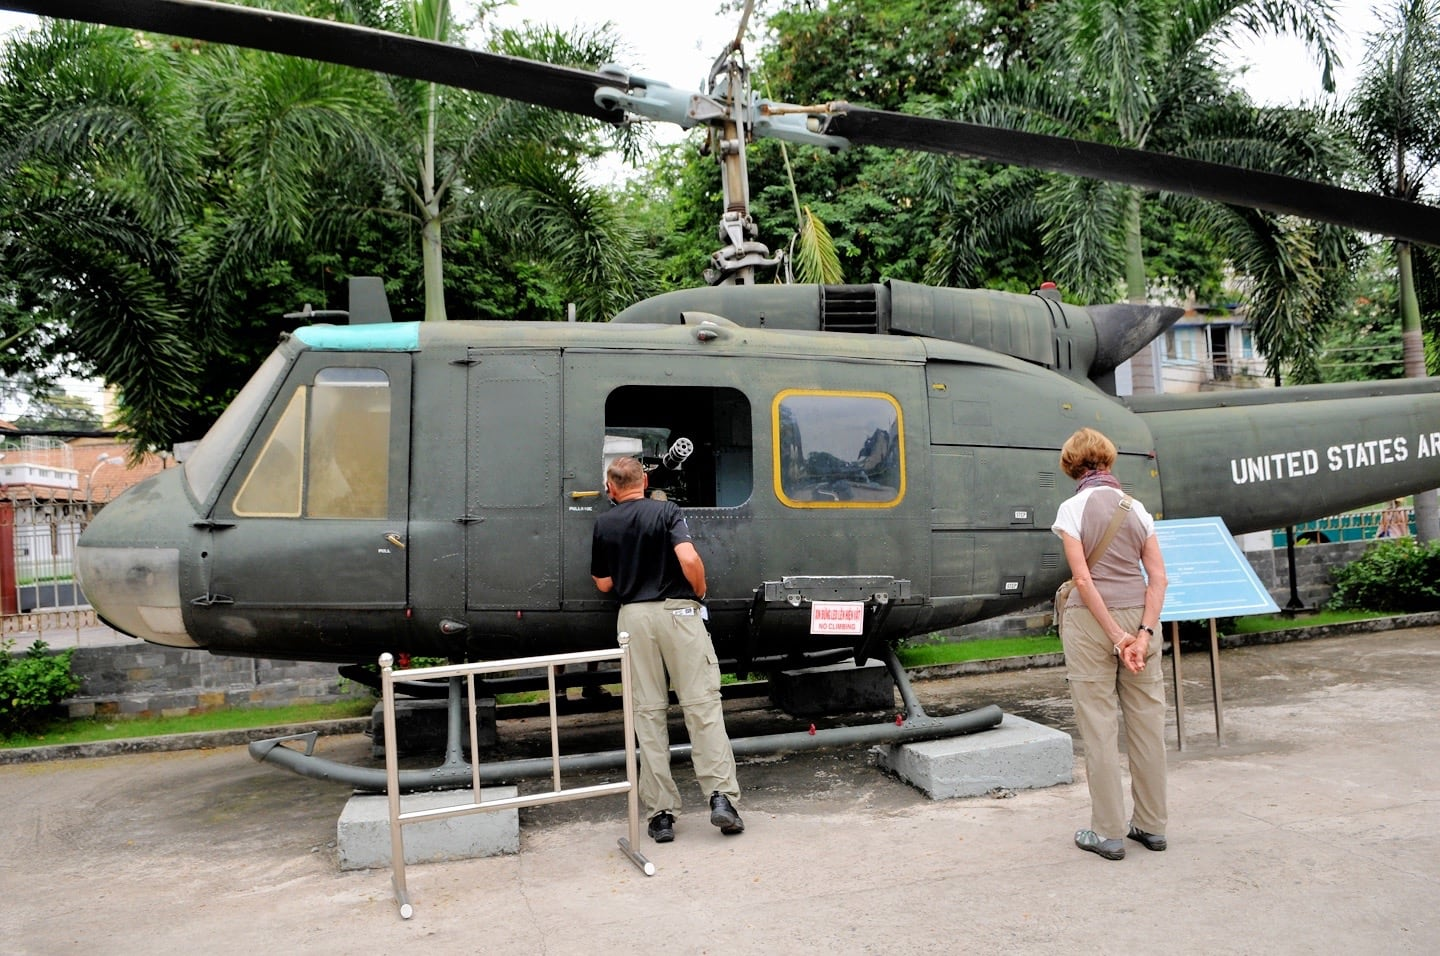 u.s. huey helicopter on display